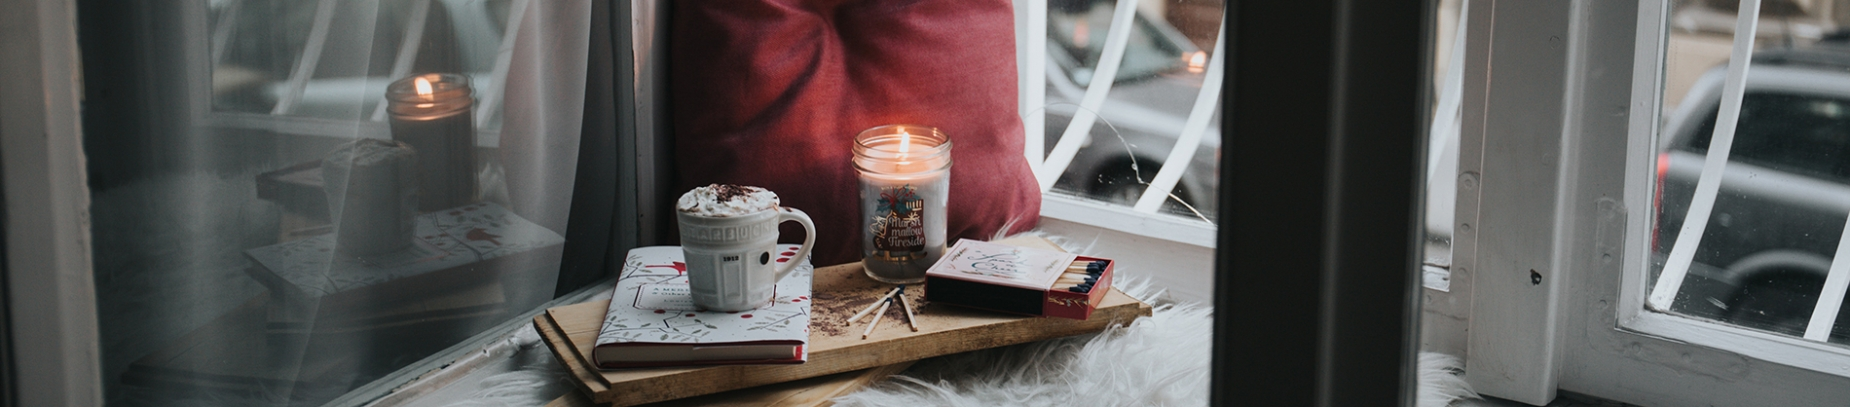 A cosy windowsill with a pillow, candle, hot chocolate and books